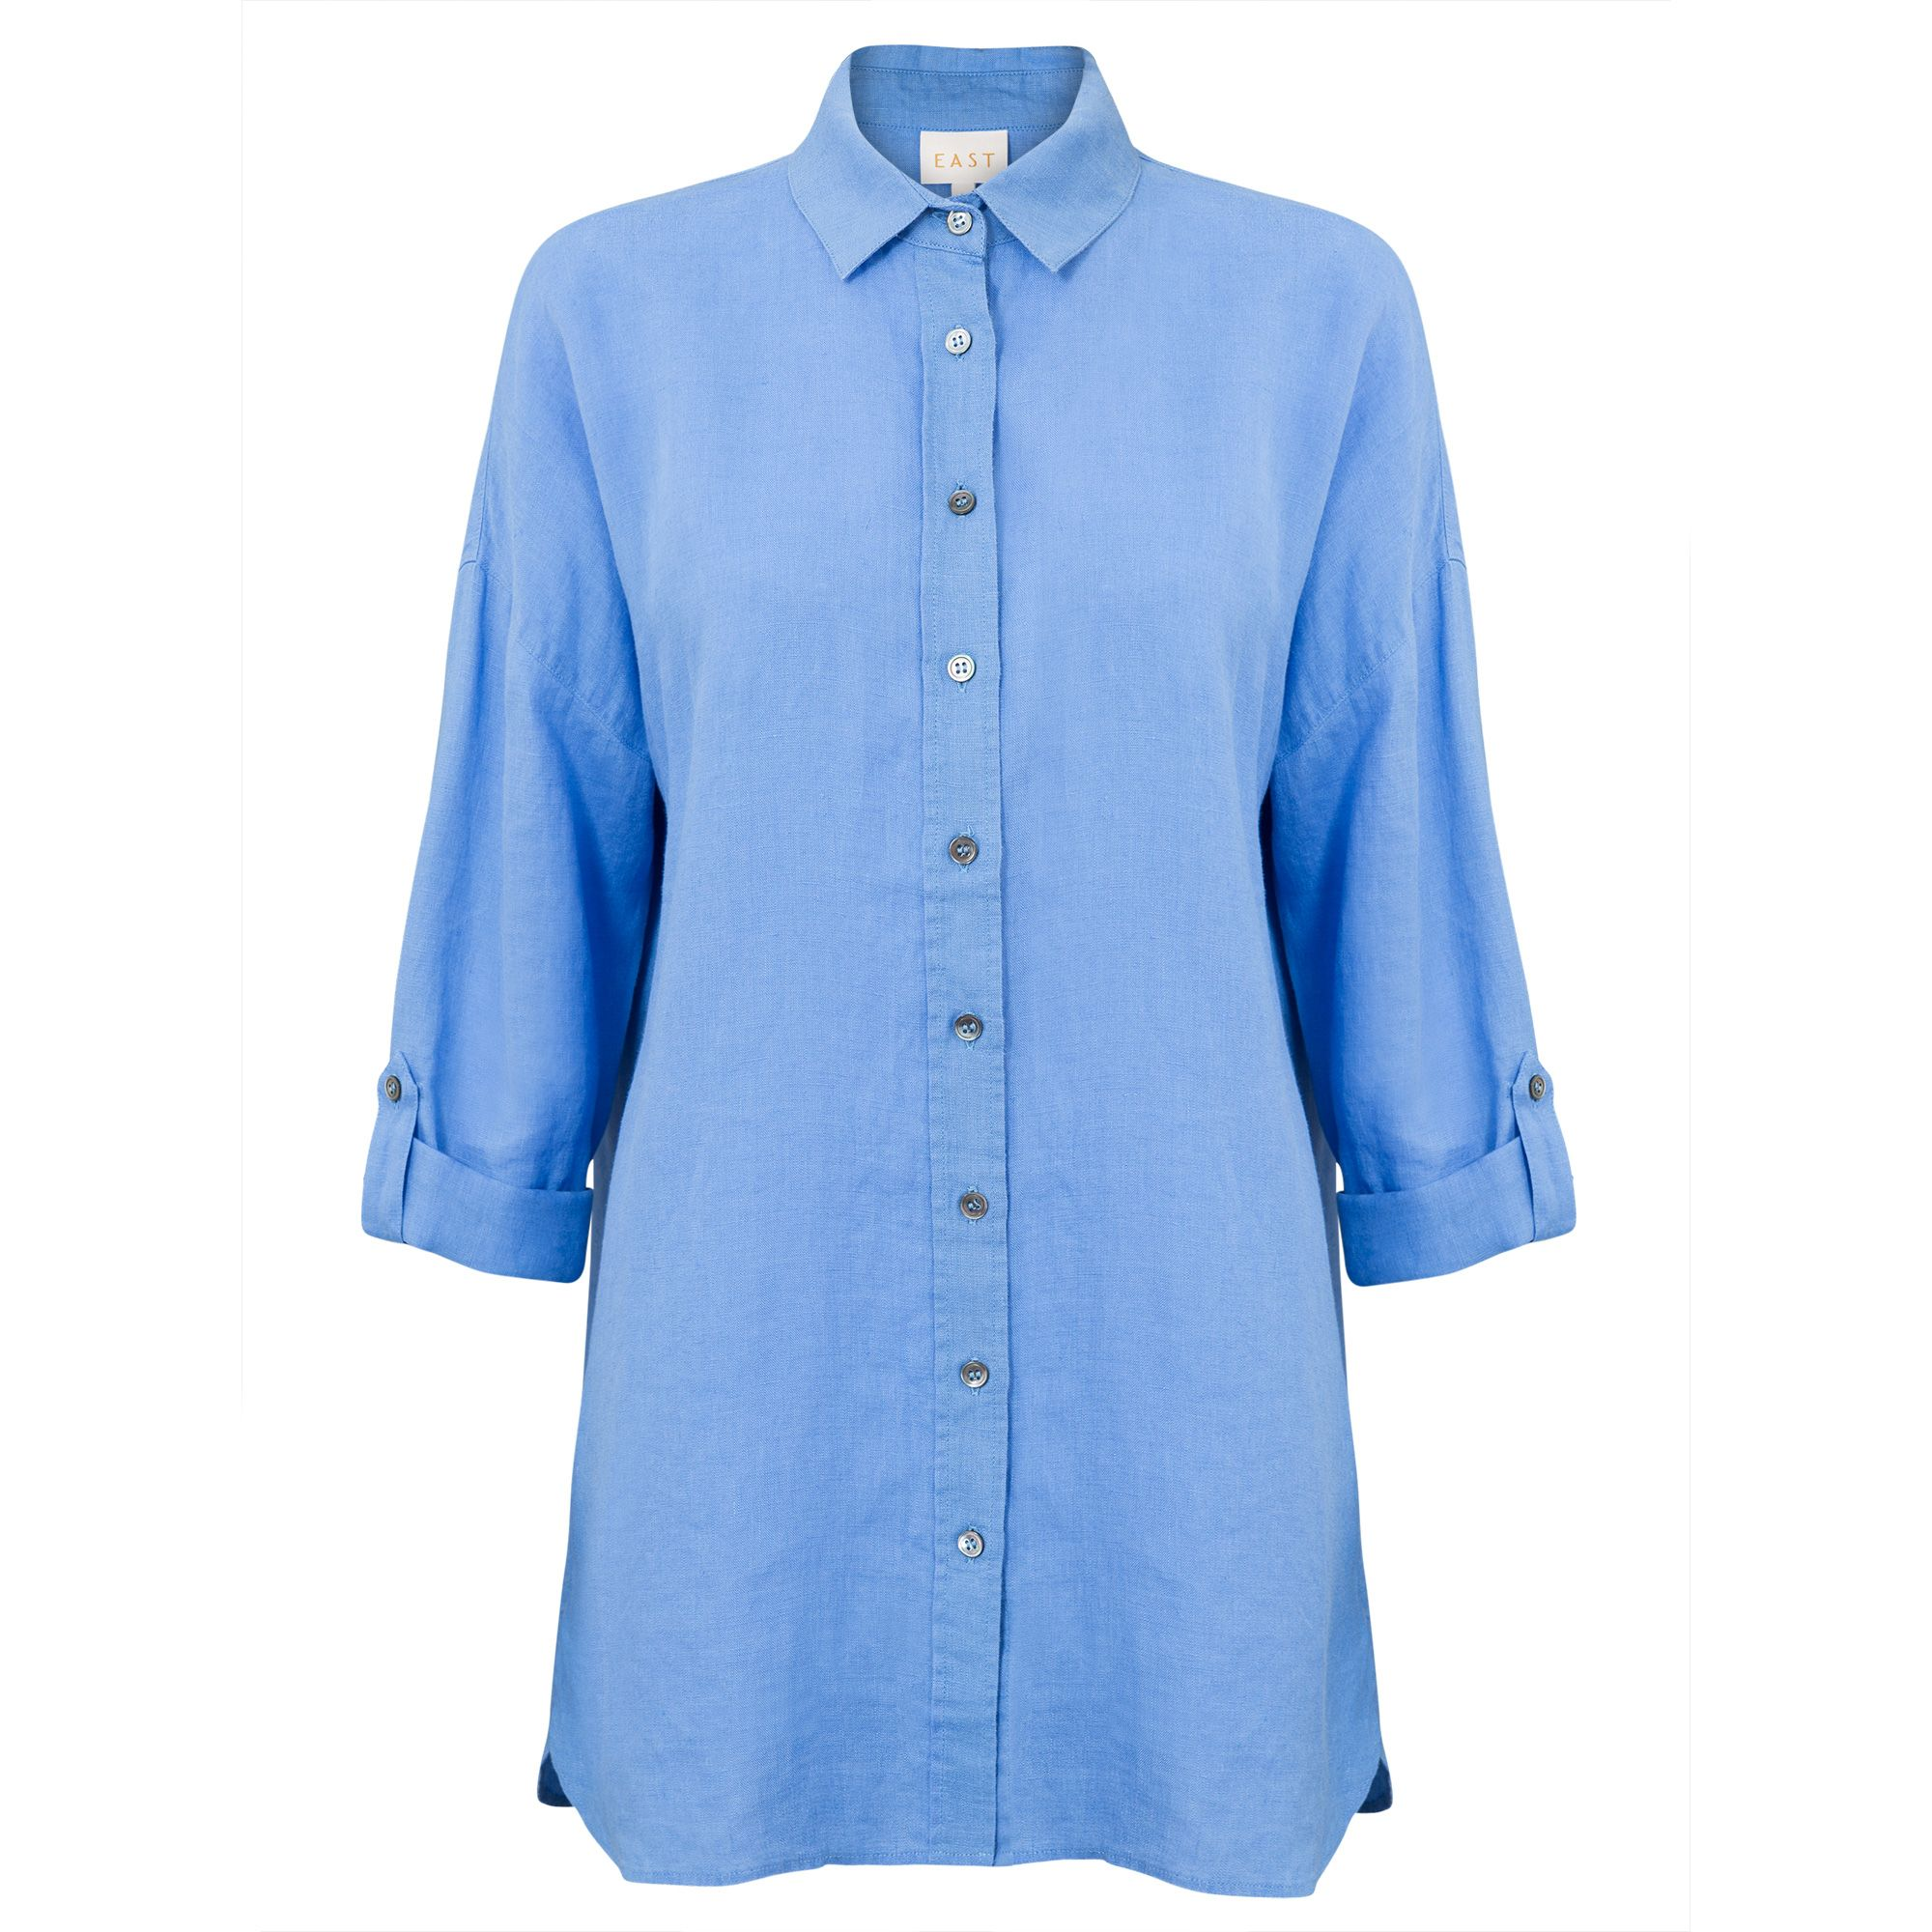 East Oversized Linen Shirt, Blue